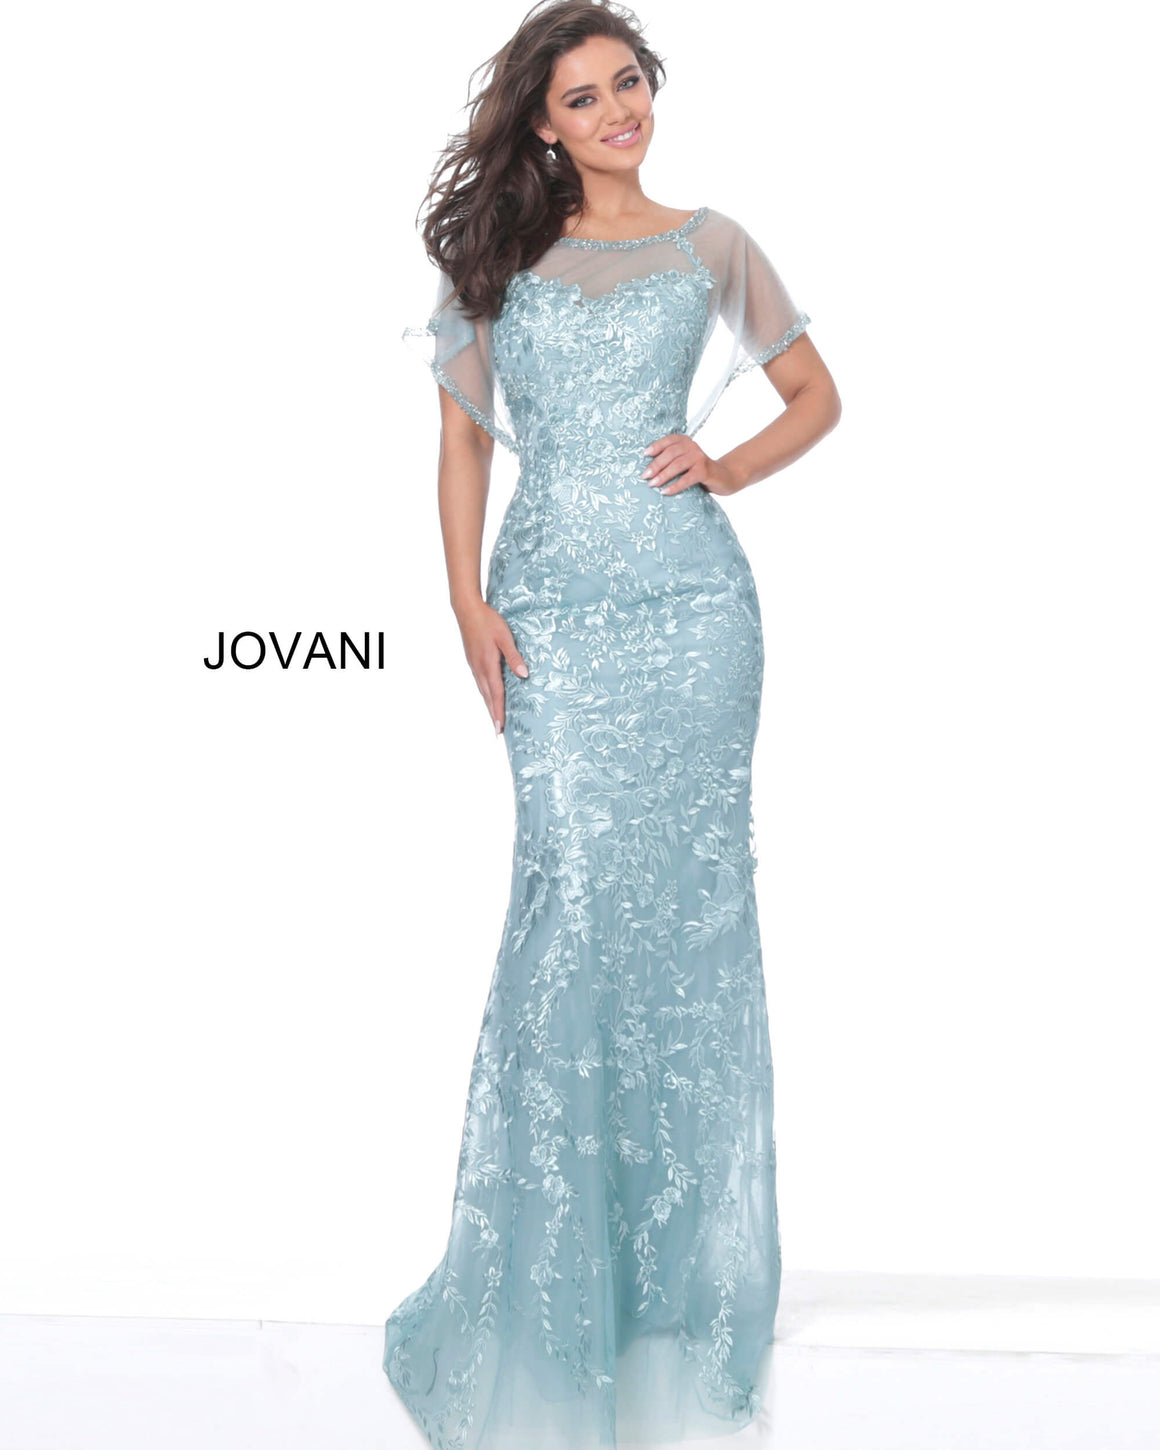 Jovani 04458 Embroidered Sheer Neck Evening Dress